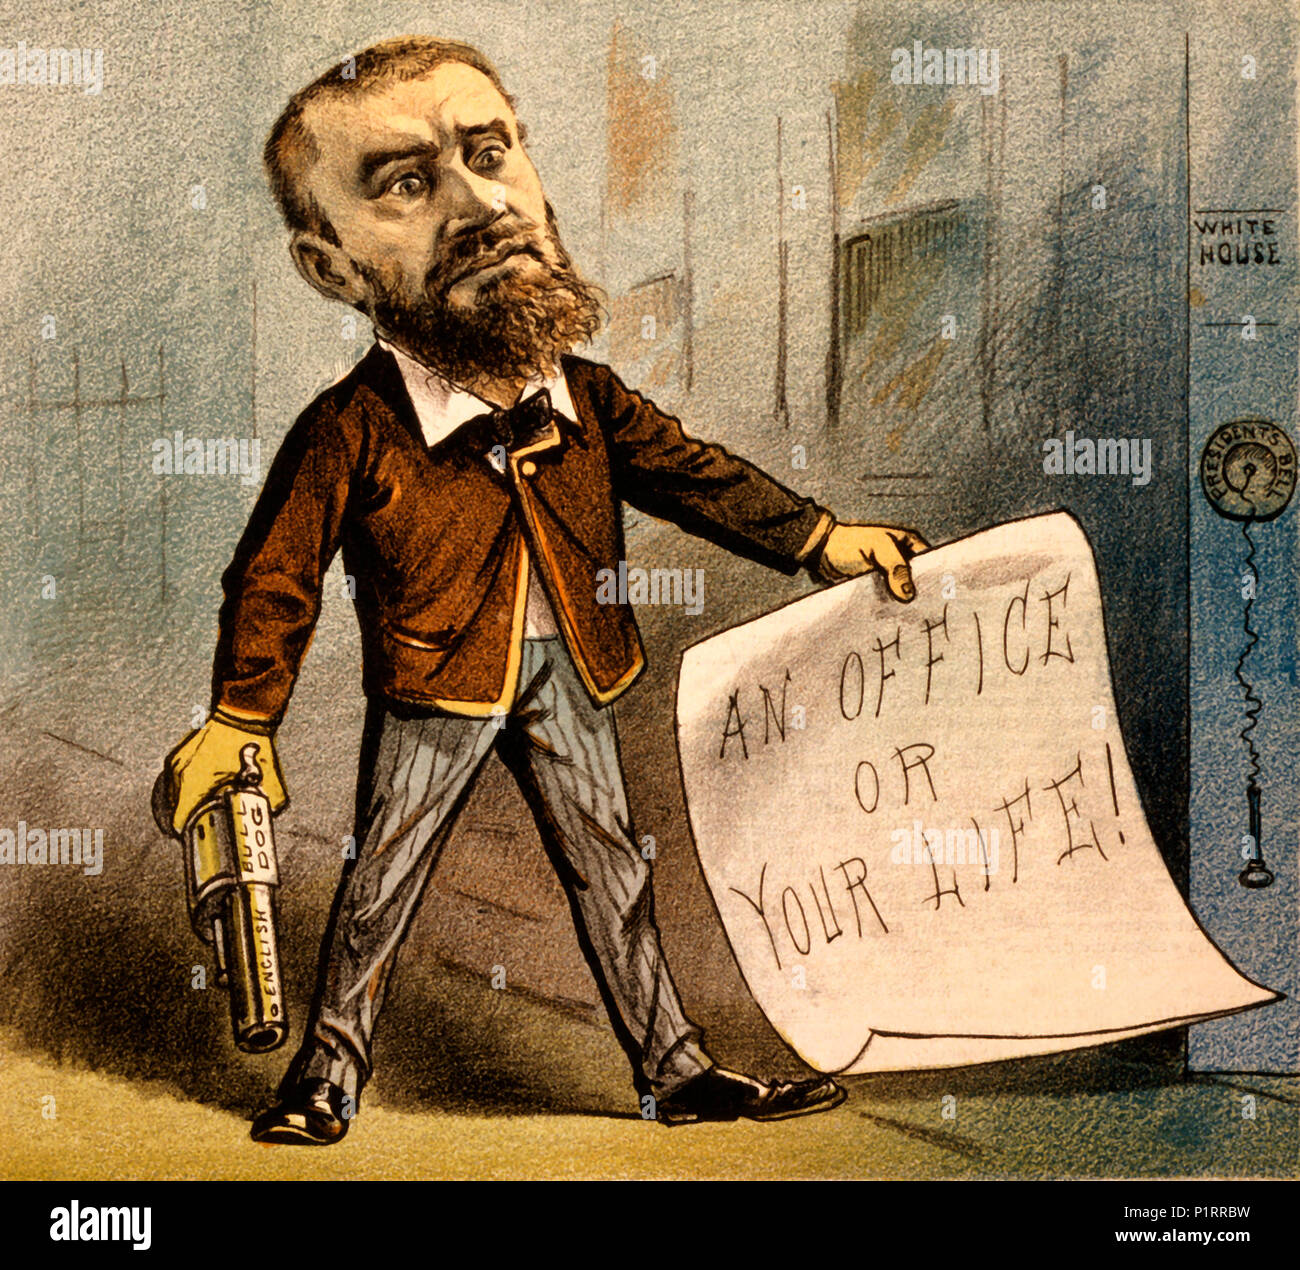 Political cartoon created for the cover of Puck Magazine on July 13, 1881. The cartoon shows Charles J. Guiteau with a gun, and a note that reads 'AN OFFICE OR YOUR LIFE!'. The caption reads: 'A Model Office Seeker'. It is accompanied by a quote: 'I am a lawyer, a theologian, and a politician' - Charles J. Guiteau. Guiteau believed himself to be largely responsible for Garfield's election to president, and demanded an ambassadorship in return. He assassinated James Garfield when he did not get it - Stock Image